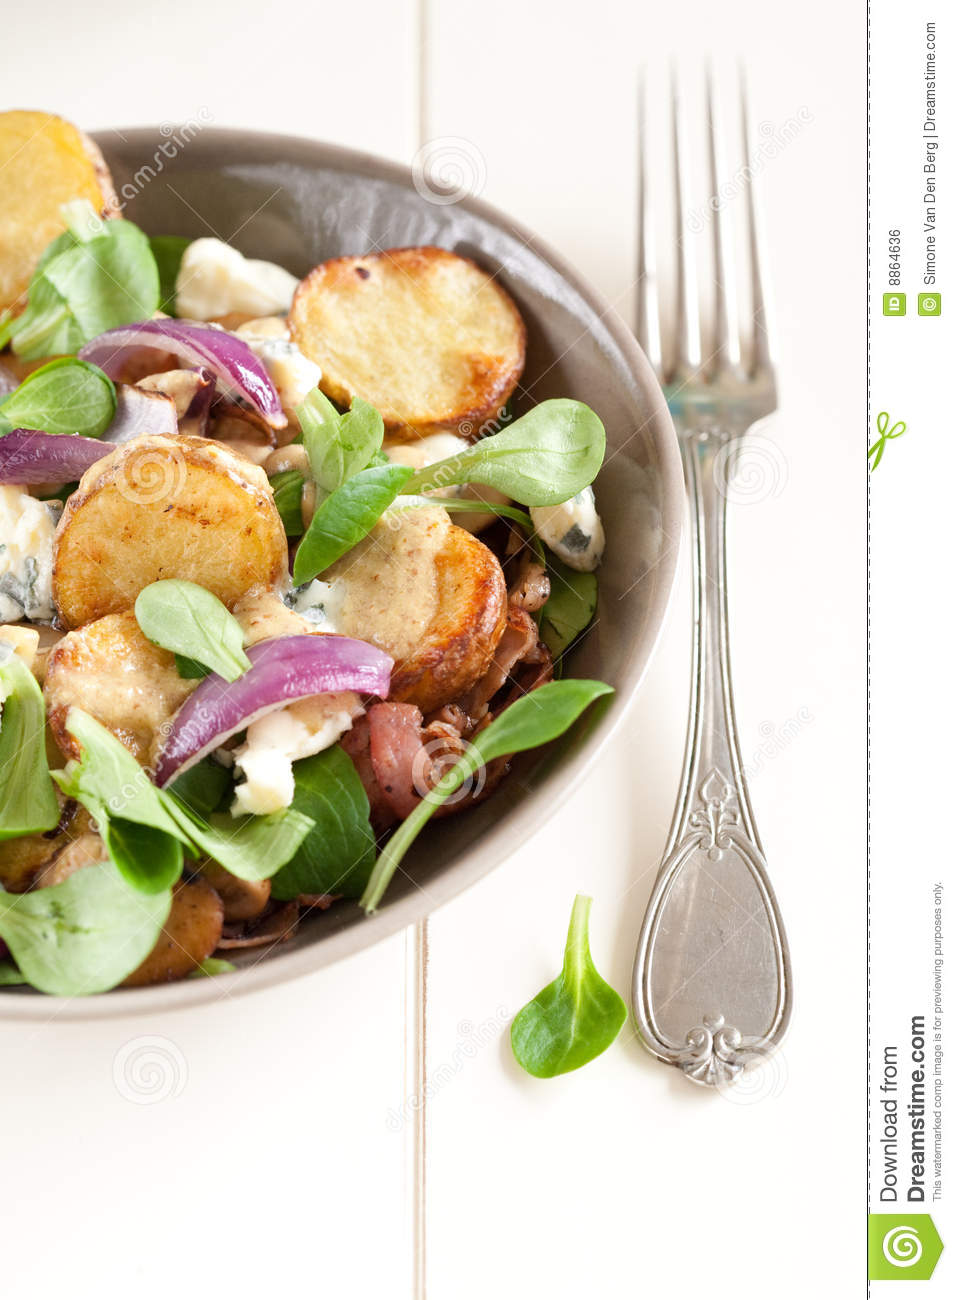 Salad with roasted potatoes and blue cheese